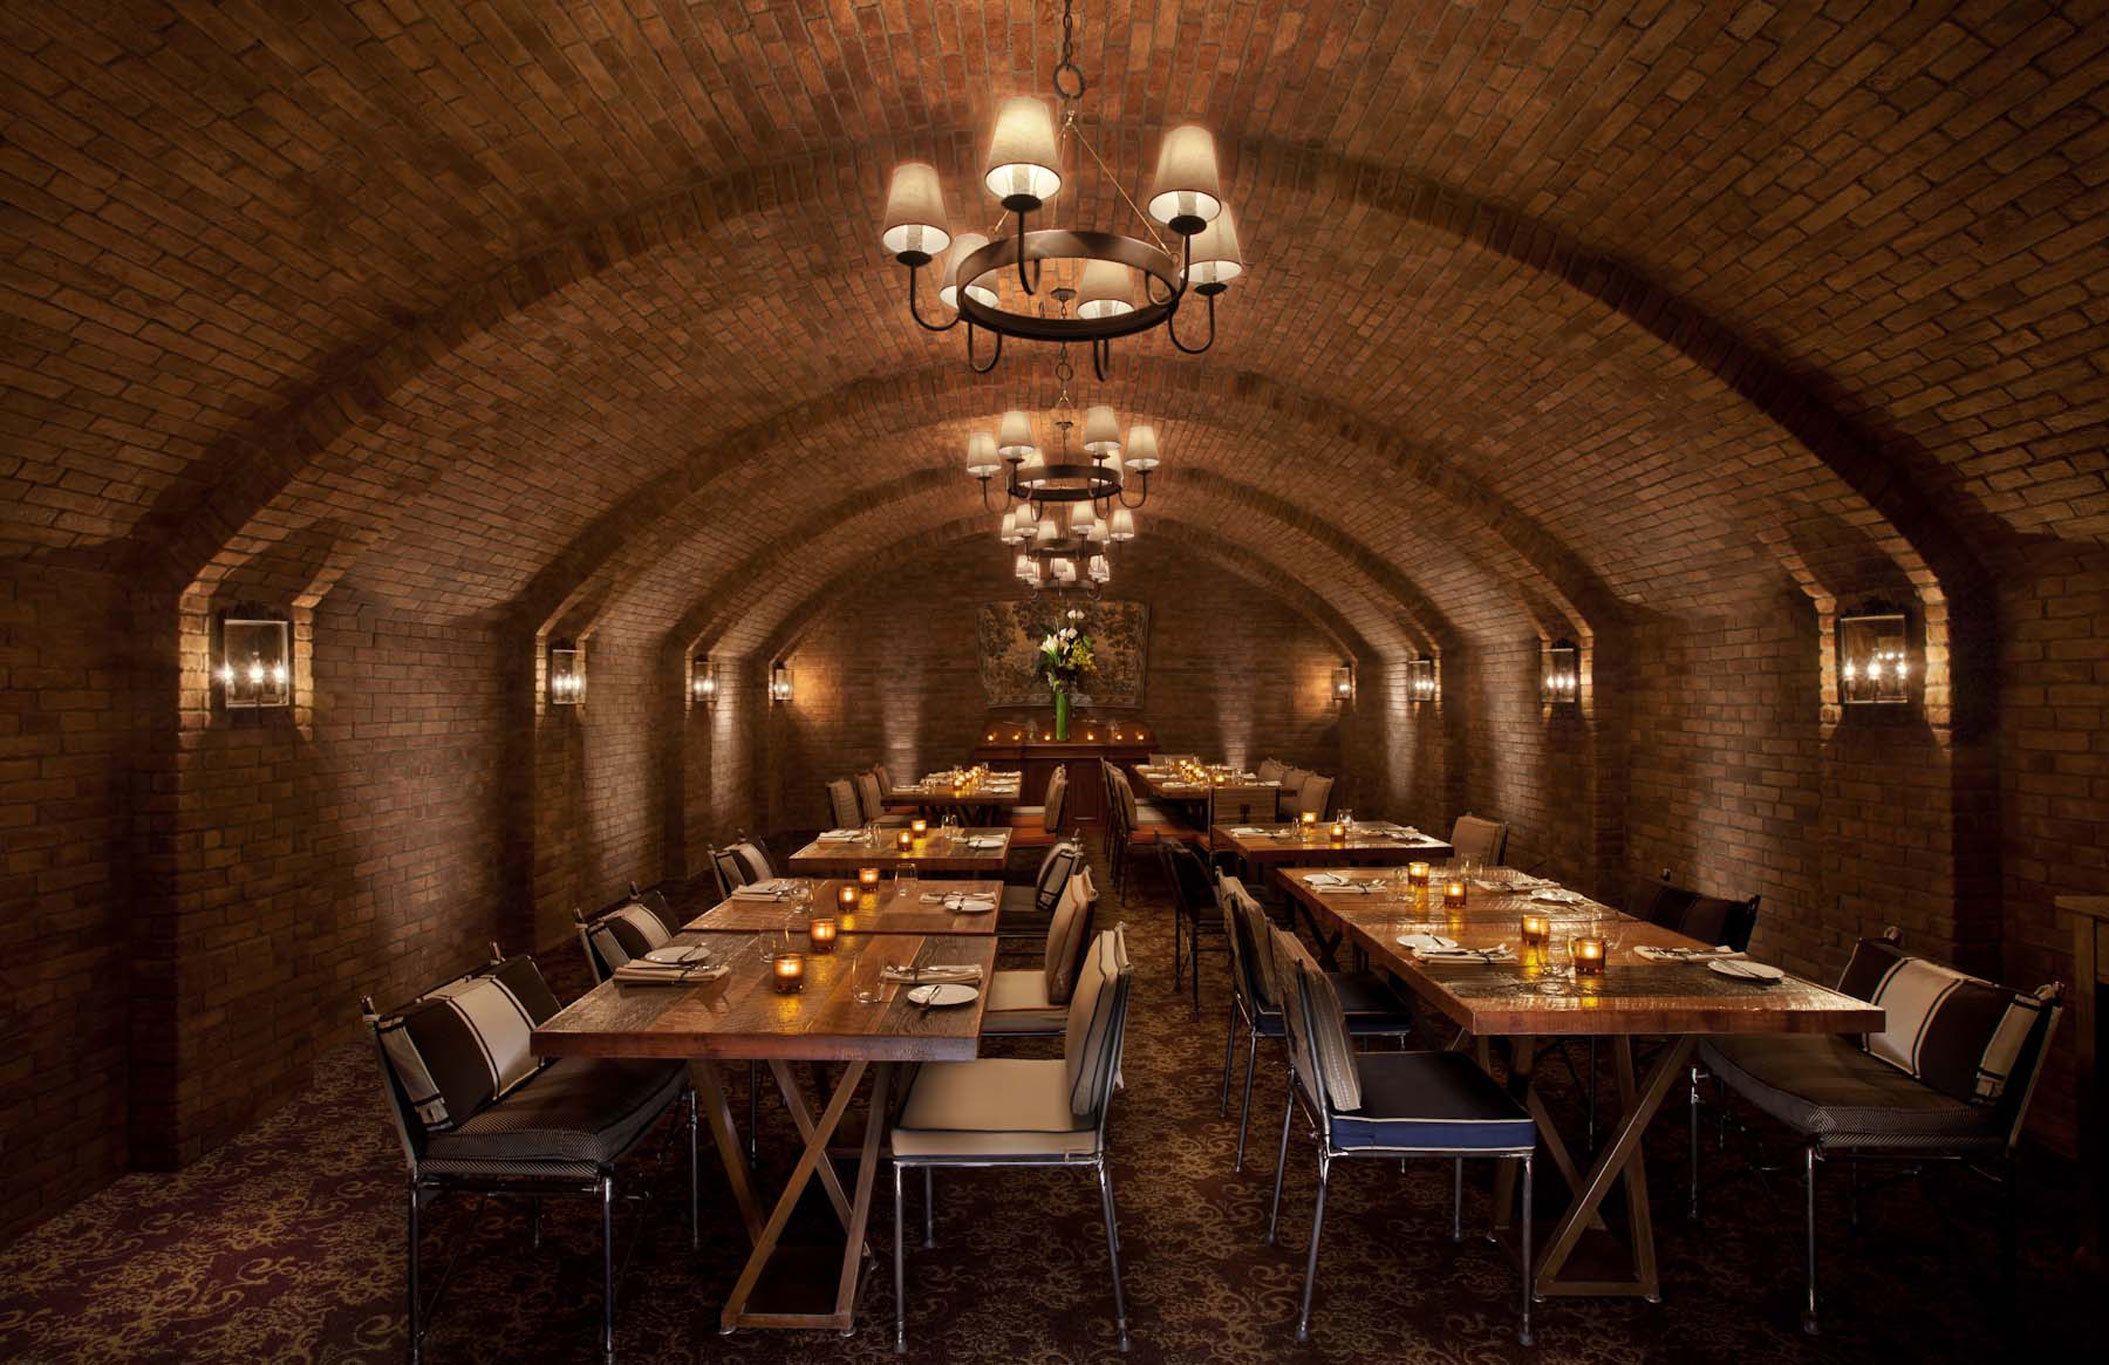 The Best Chefs Tables Counters And Private Dining In LA